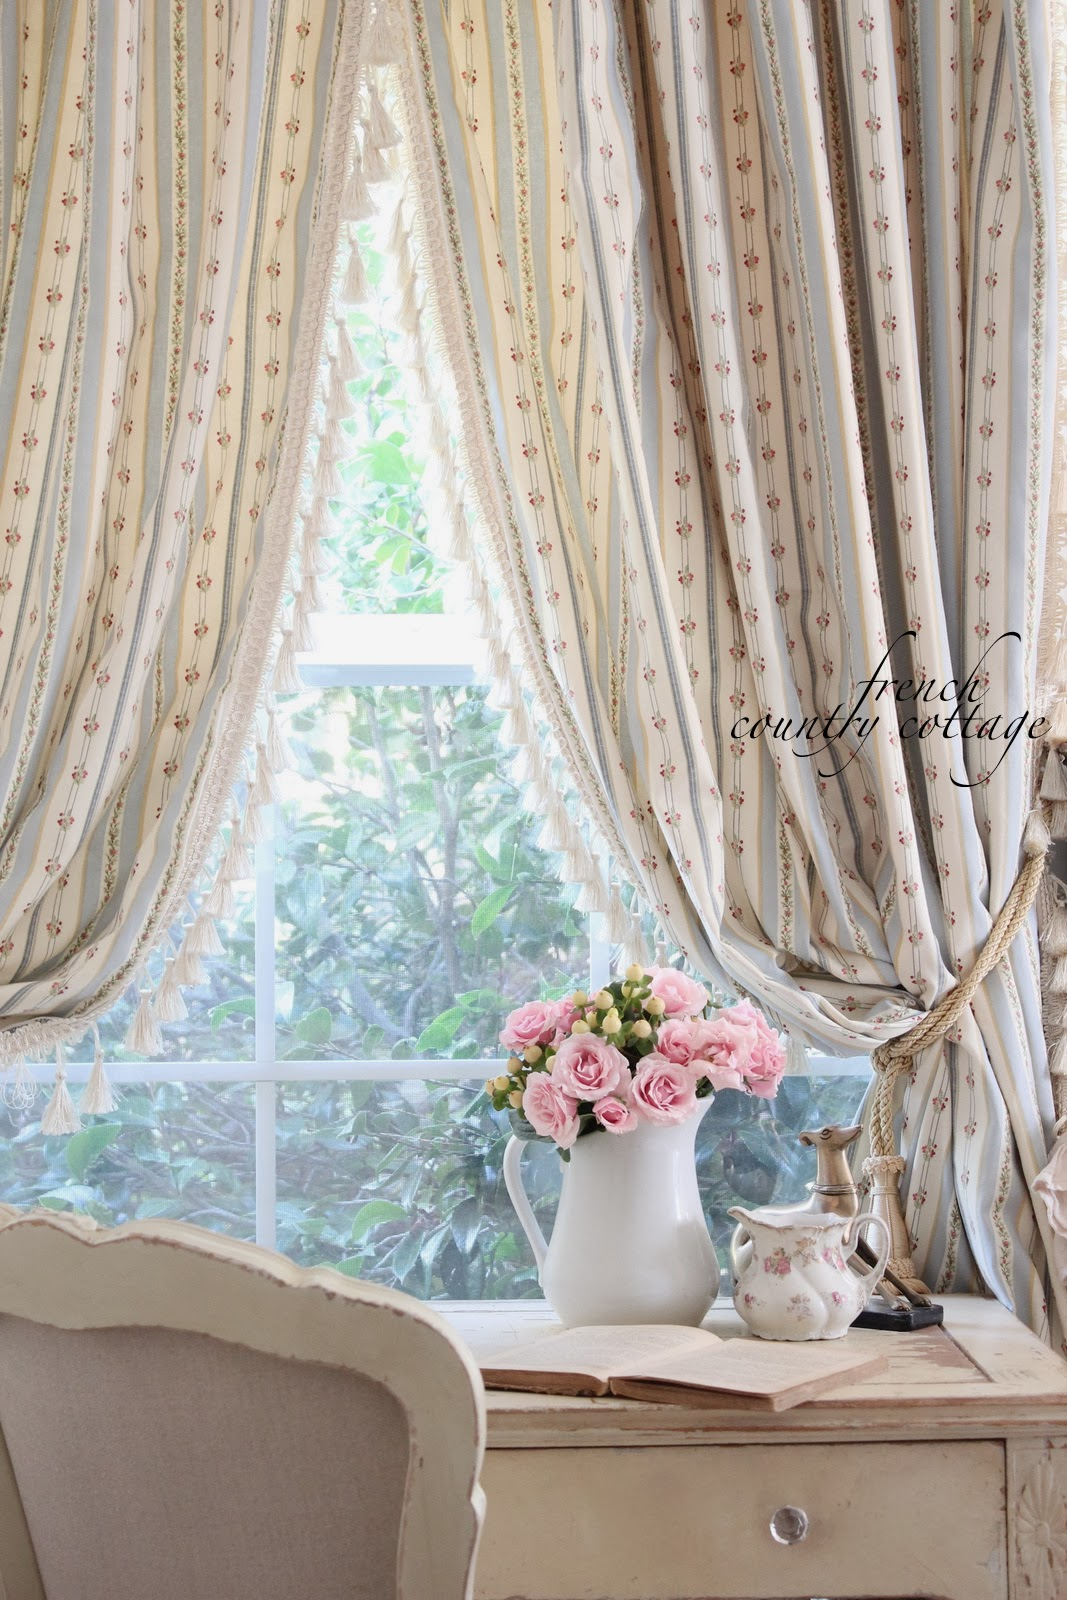 French Ticking Stripe Drapes  French Country Cottage. Garage Glass Doors. Home Depot Garage Doors Prices. Door Blinds Home Depot. Garage Roof Repair. Lp Gas Garage Heater. Pocket Door Handles. Overhead Door Houston. Overhead Garage Door Troubleshooting